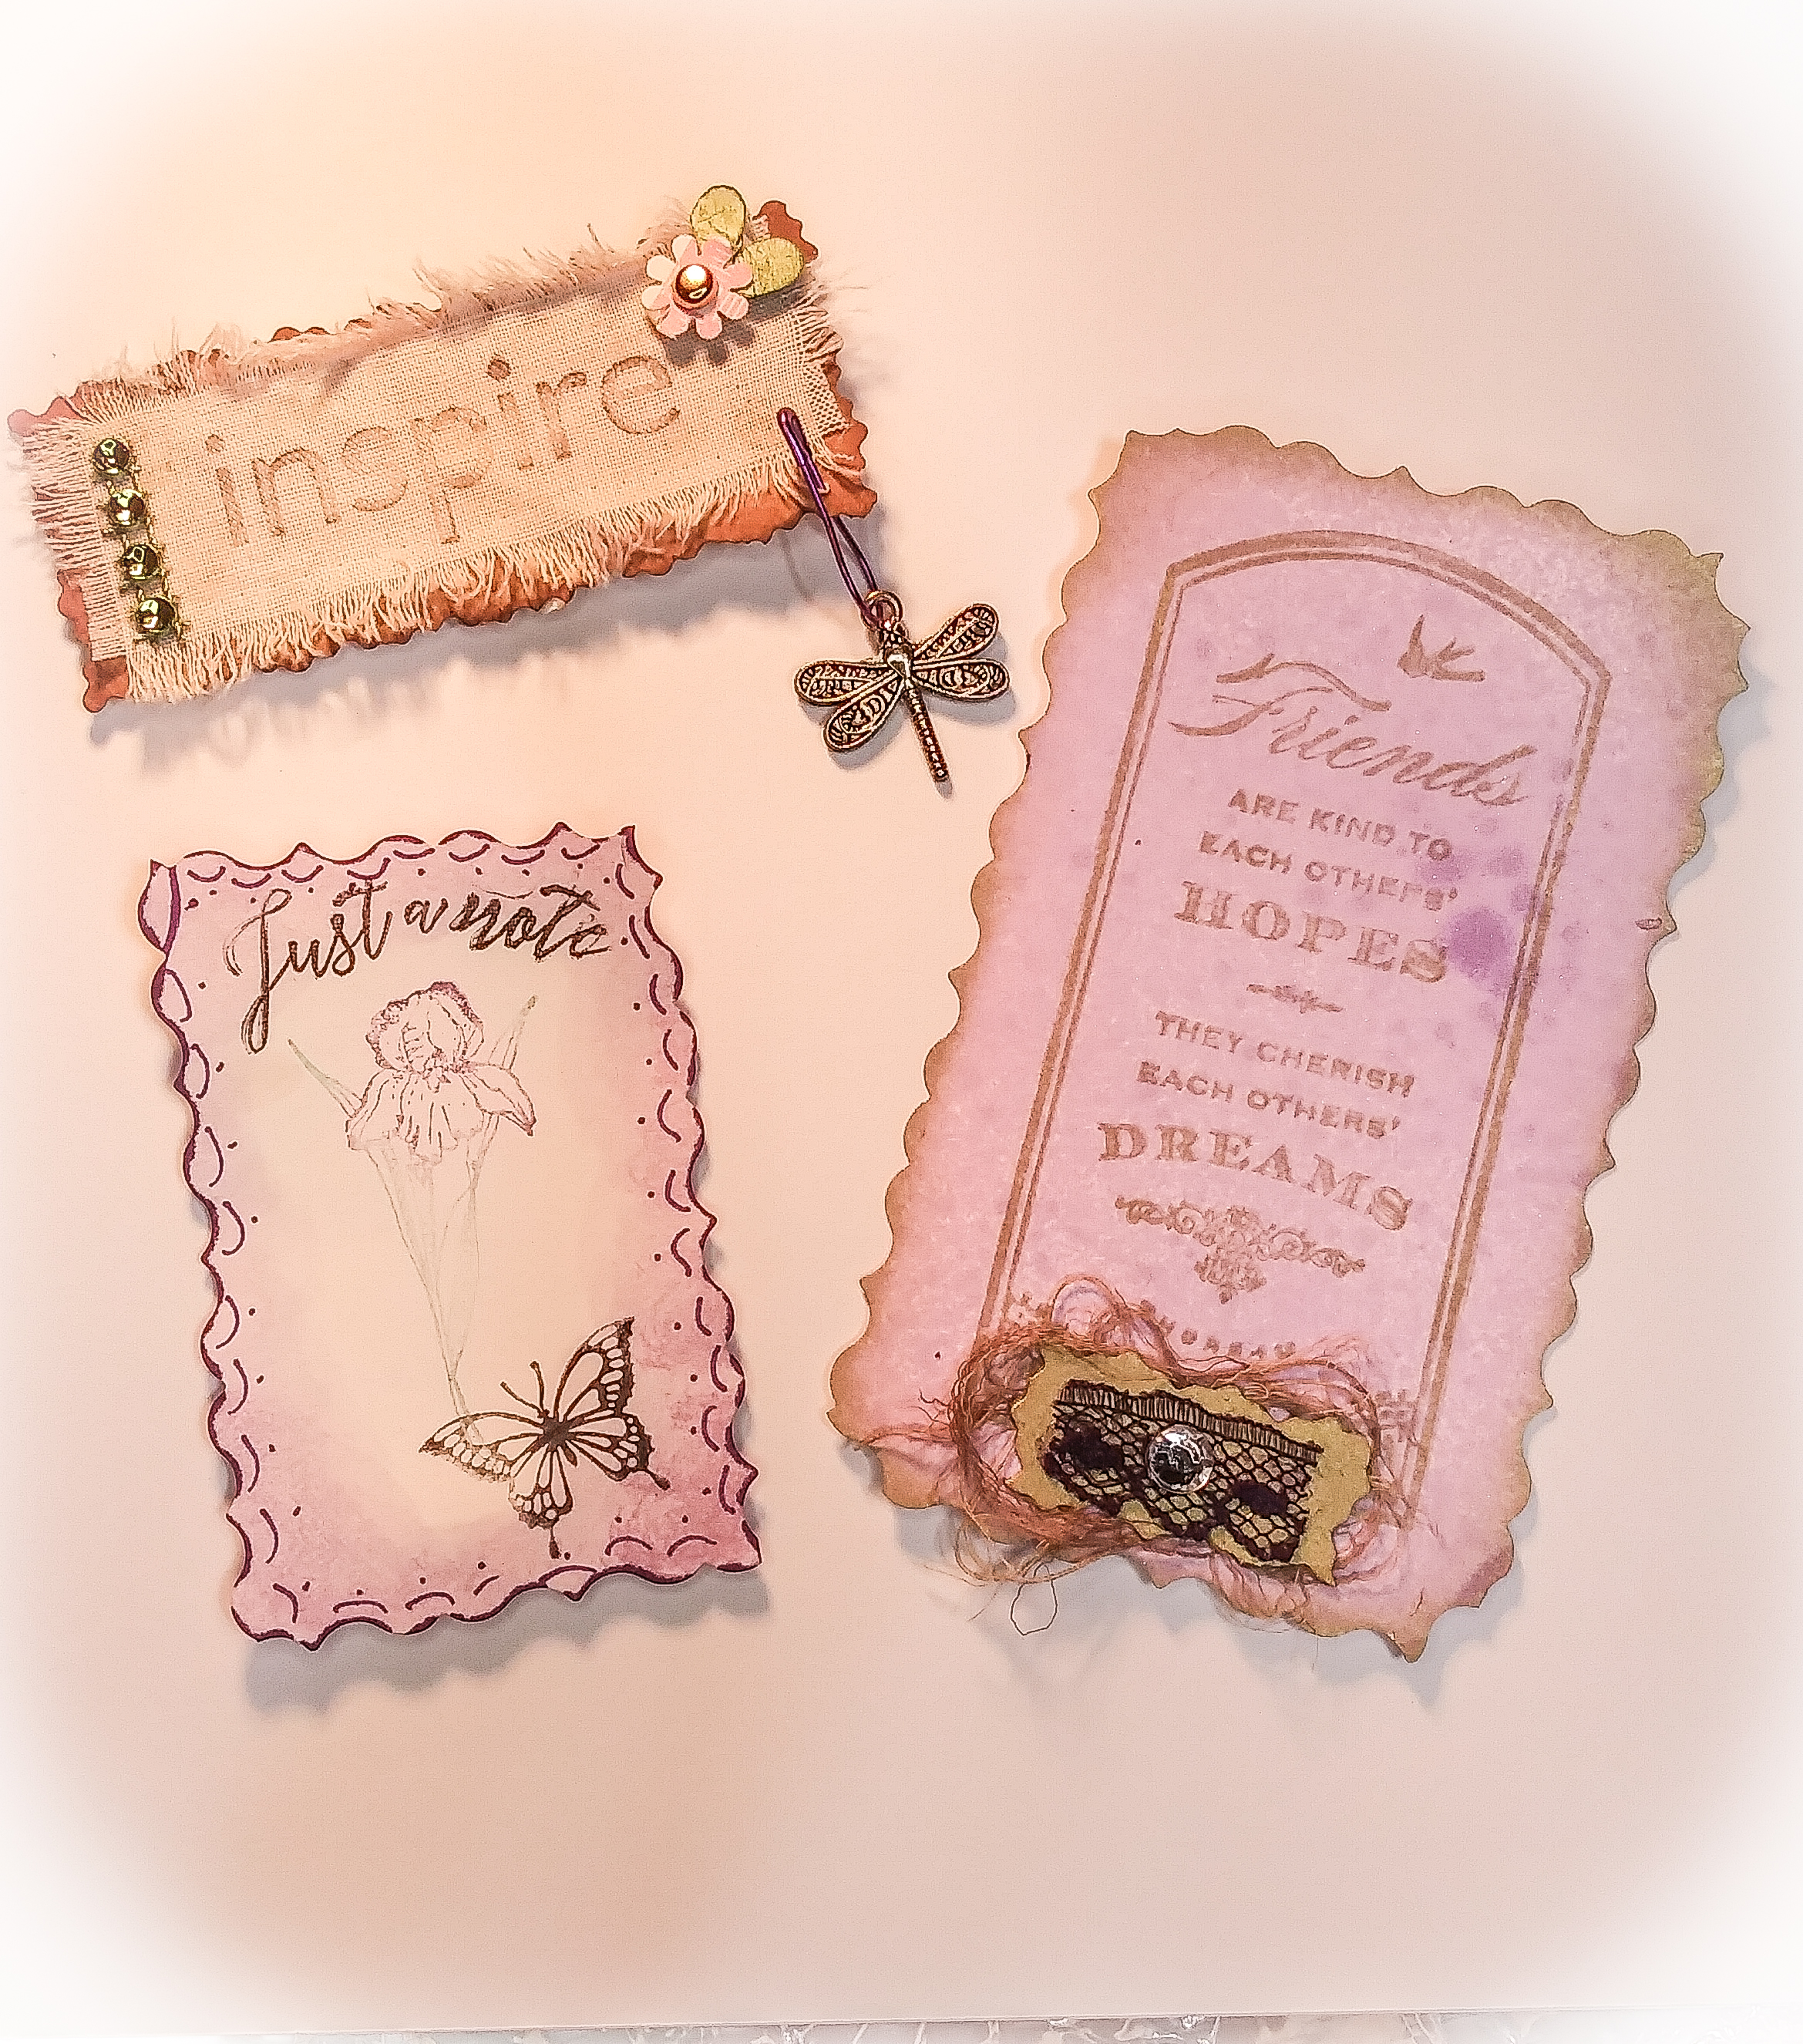 Stamped embellishments